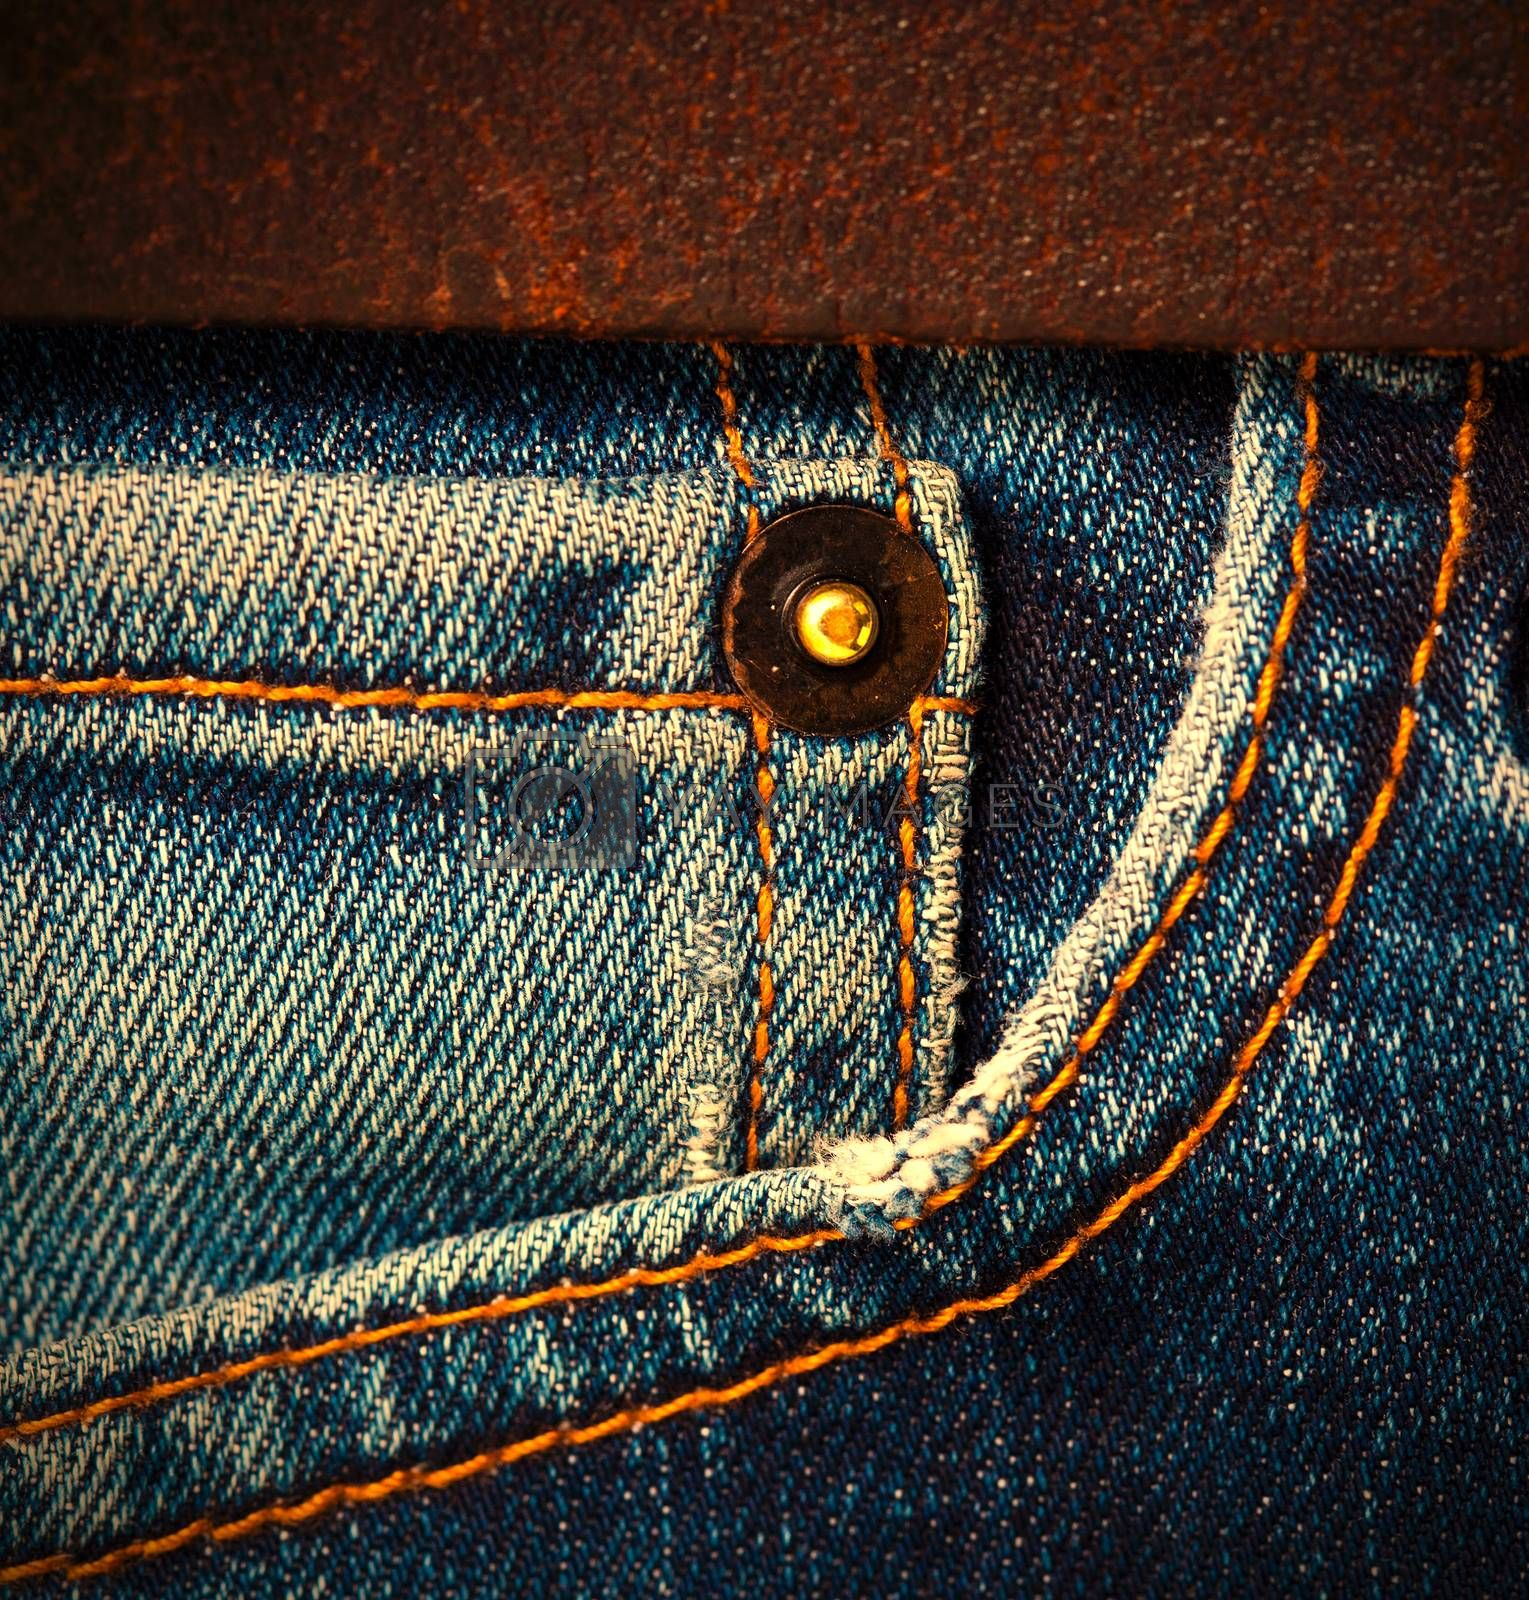 Royalty free image of jeans with a brown leather belt by Astroid